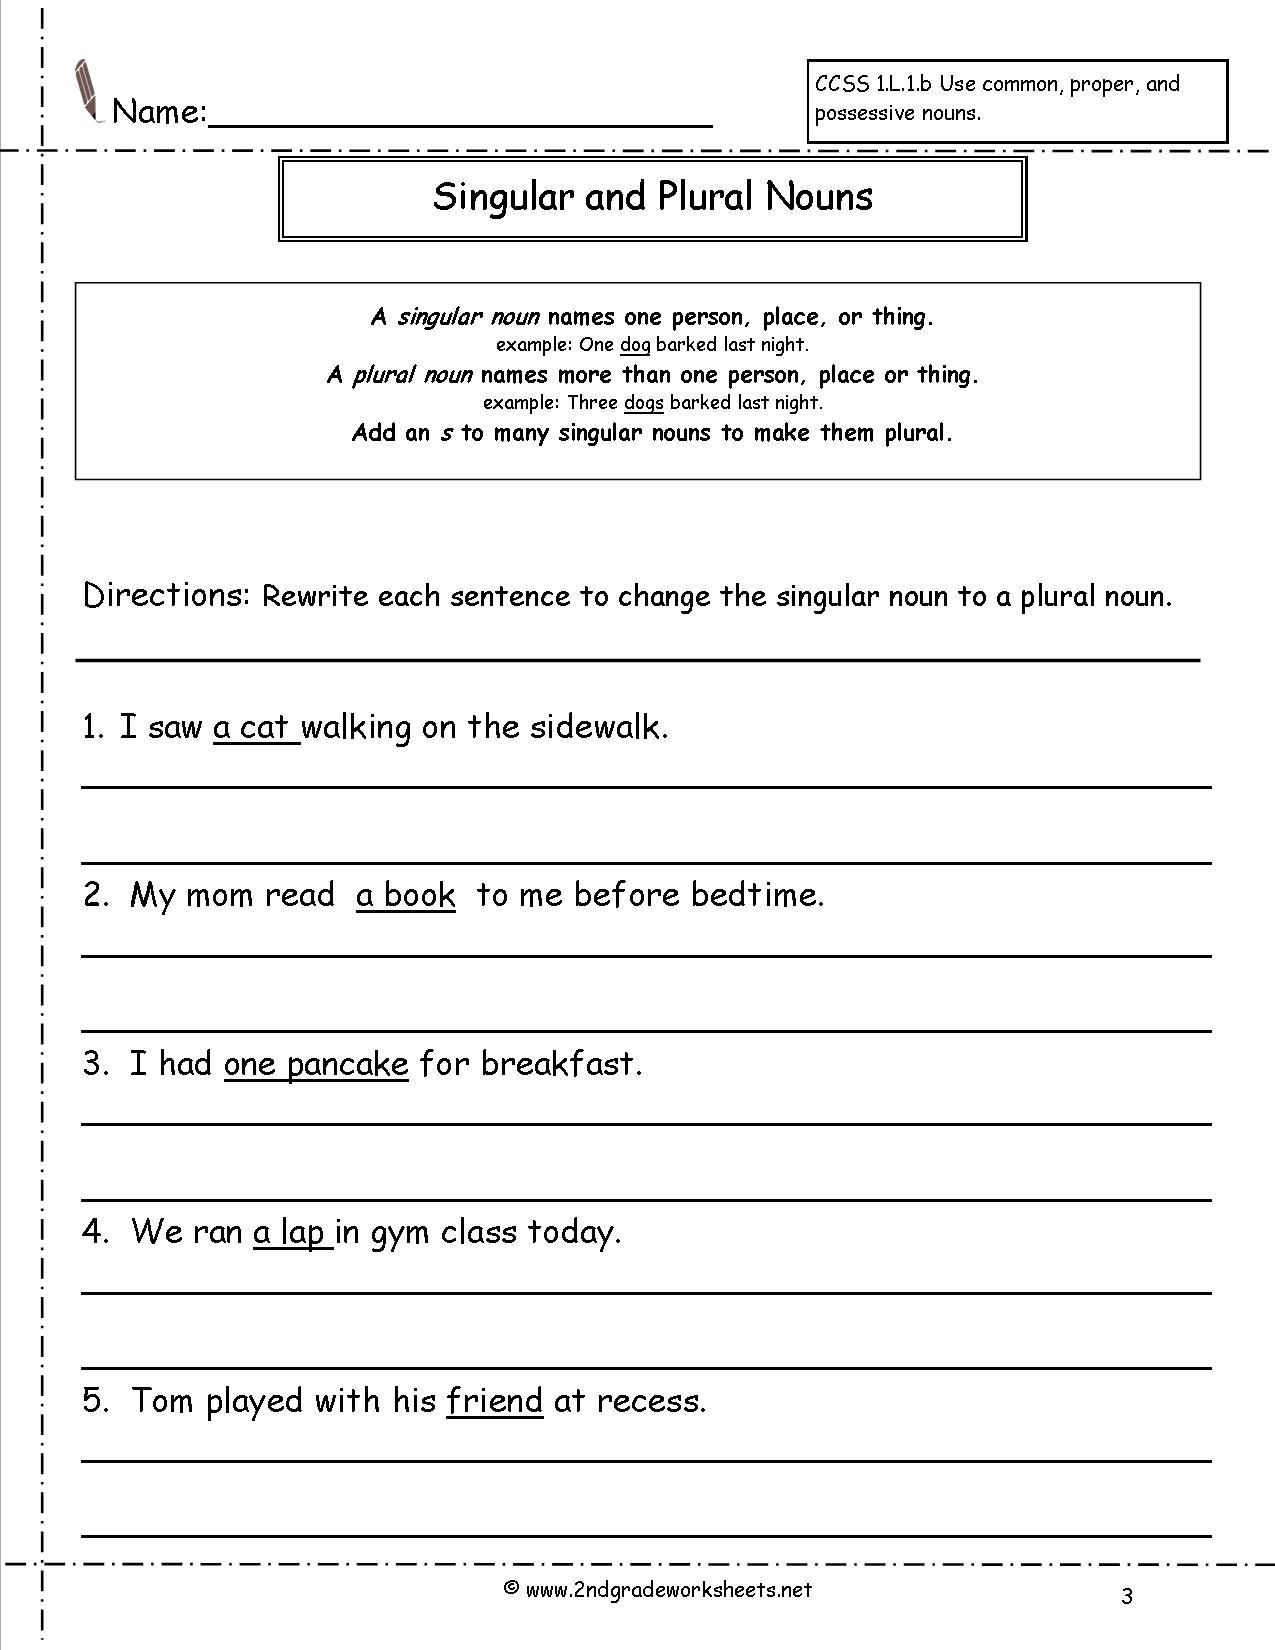 Plural Nouns Worksheet 5th Grade Singular and Plural Nouns Worksheet